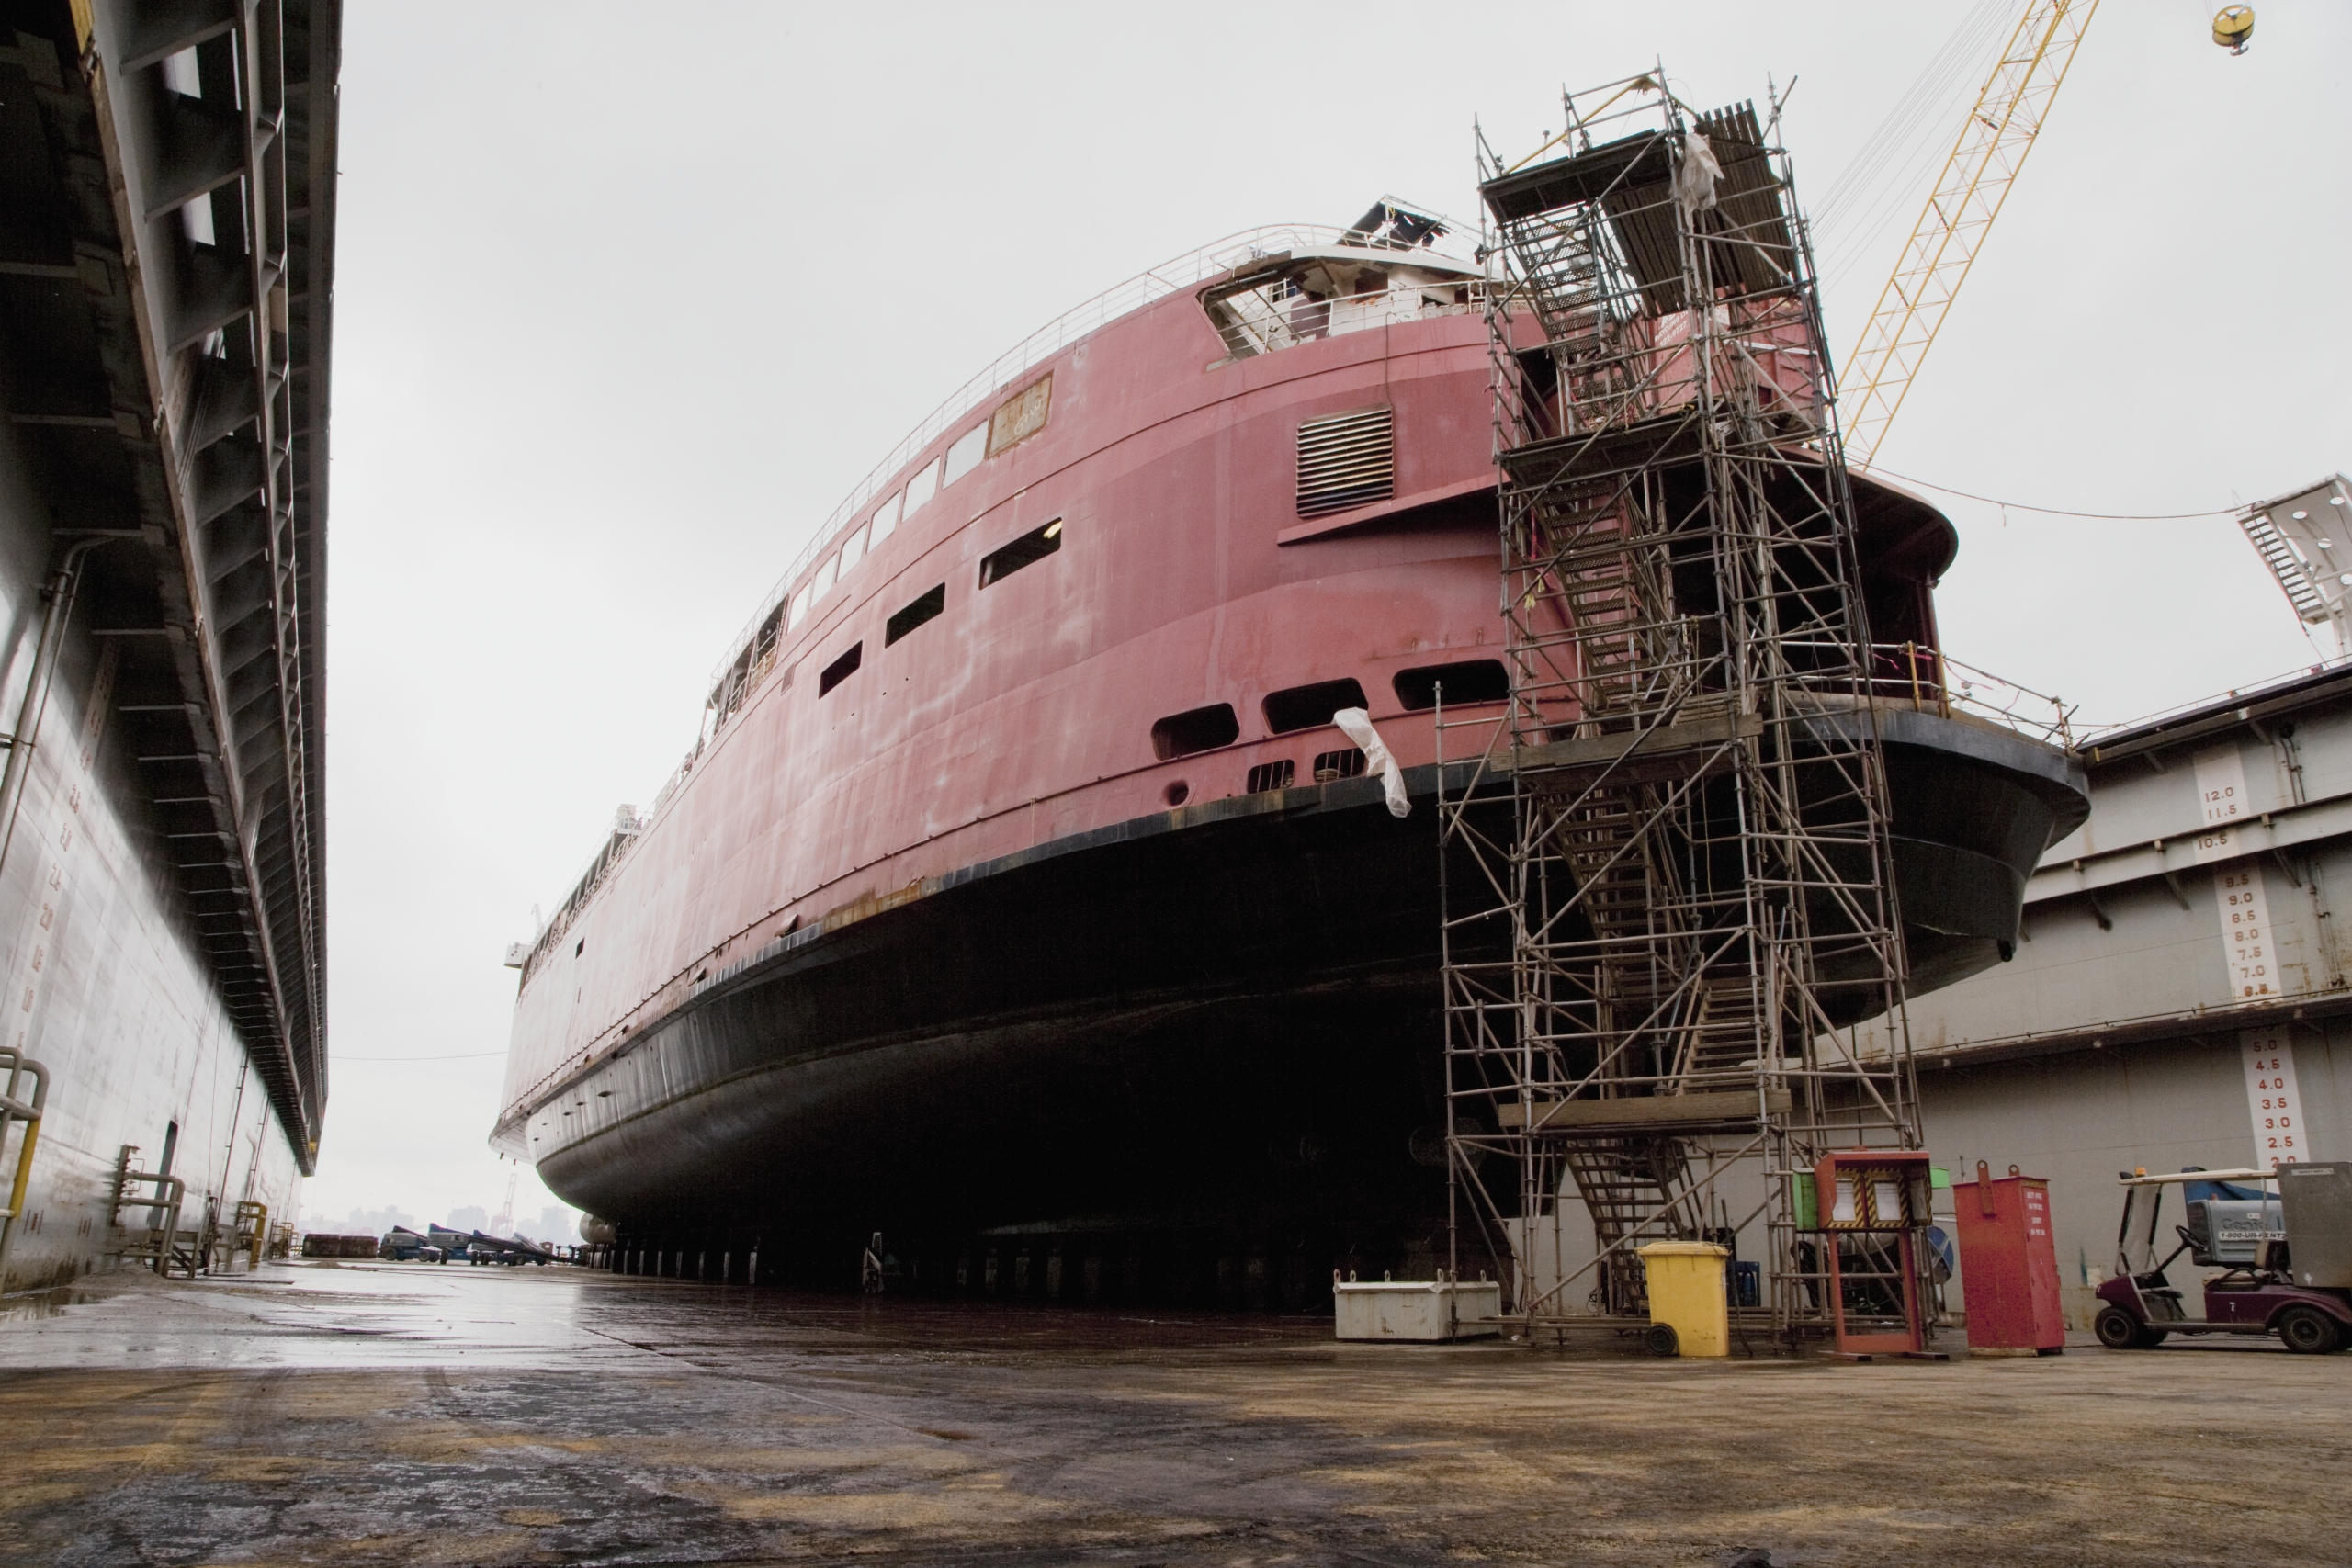 Ship on Dry Dock, a large vessel beached for repair out of the water